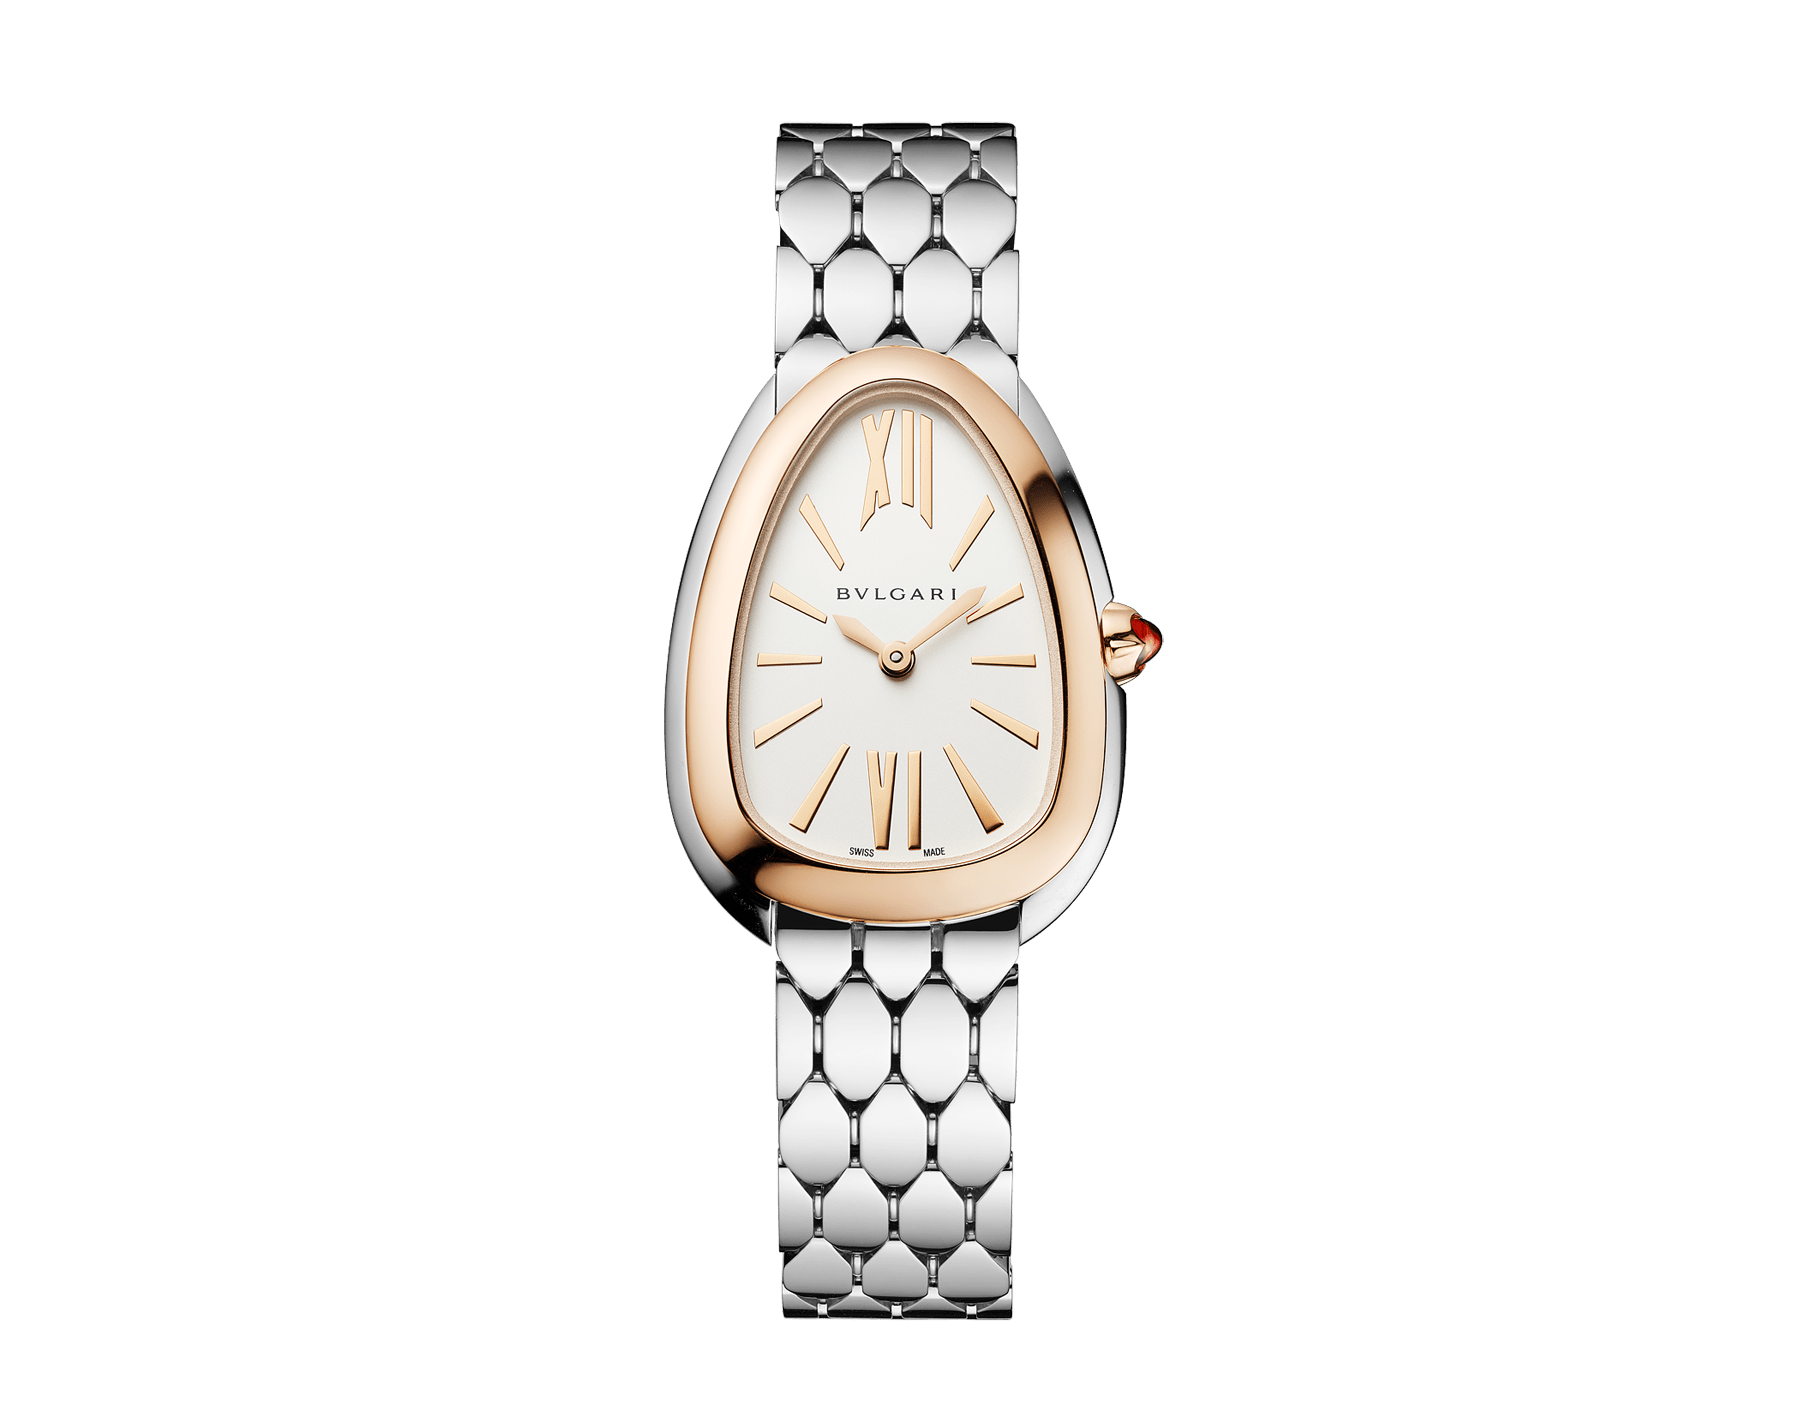 Serpenti Seduttori watch with stainless steel case, stainless steel bracelet, 18 kt rose gold bezel and a white silver opaline dial. 103144 image 1